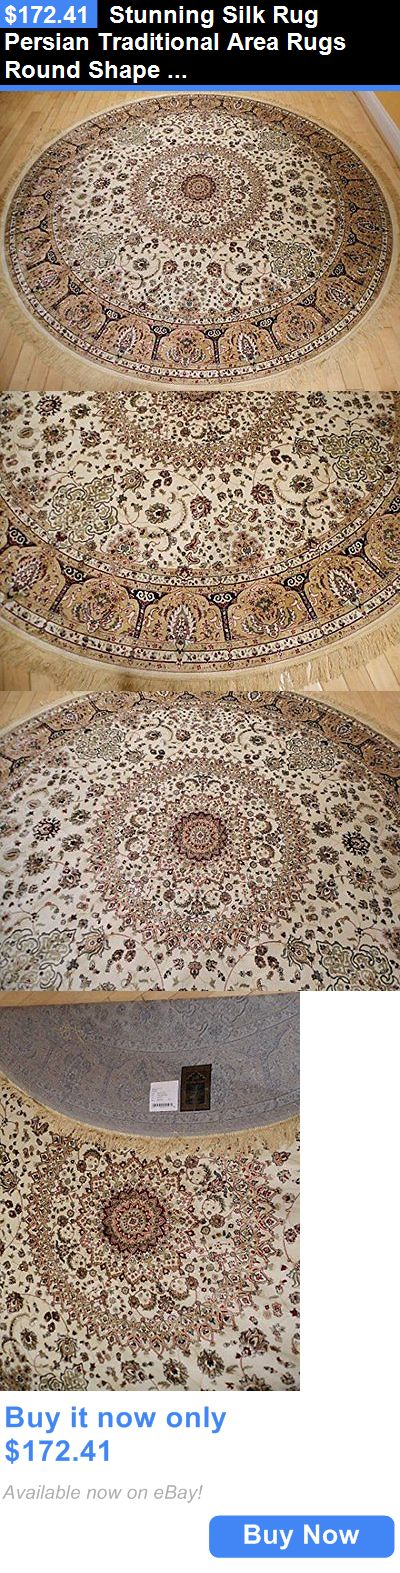 household items: Stunning Silk Rug Persian Traditional Area Rugs Round Shape Living Room Ivory 8 BUY IT NOW ONLY: $172.41